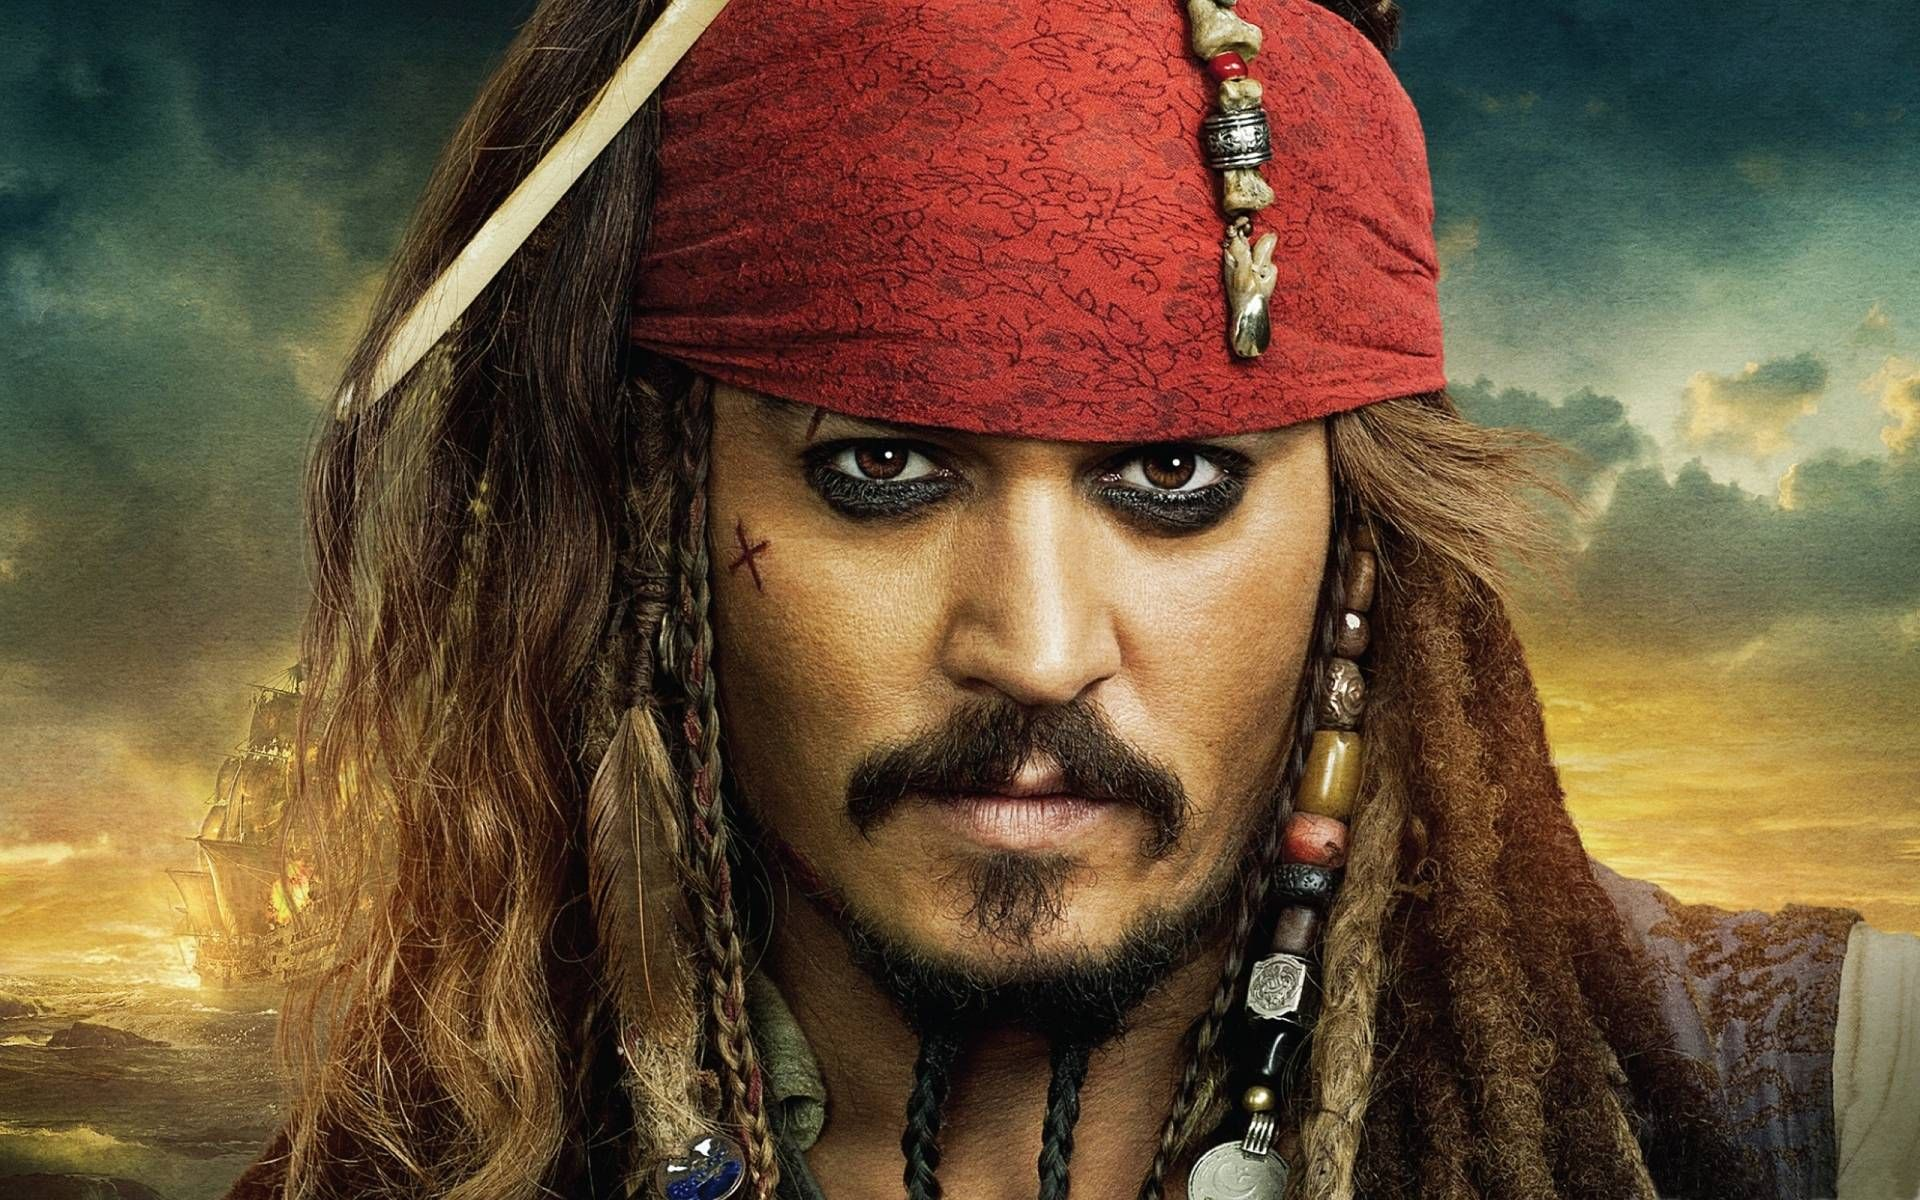 Jack Sparrow Wallpapers - Top Free Jack